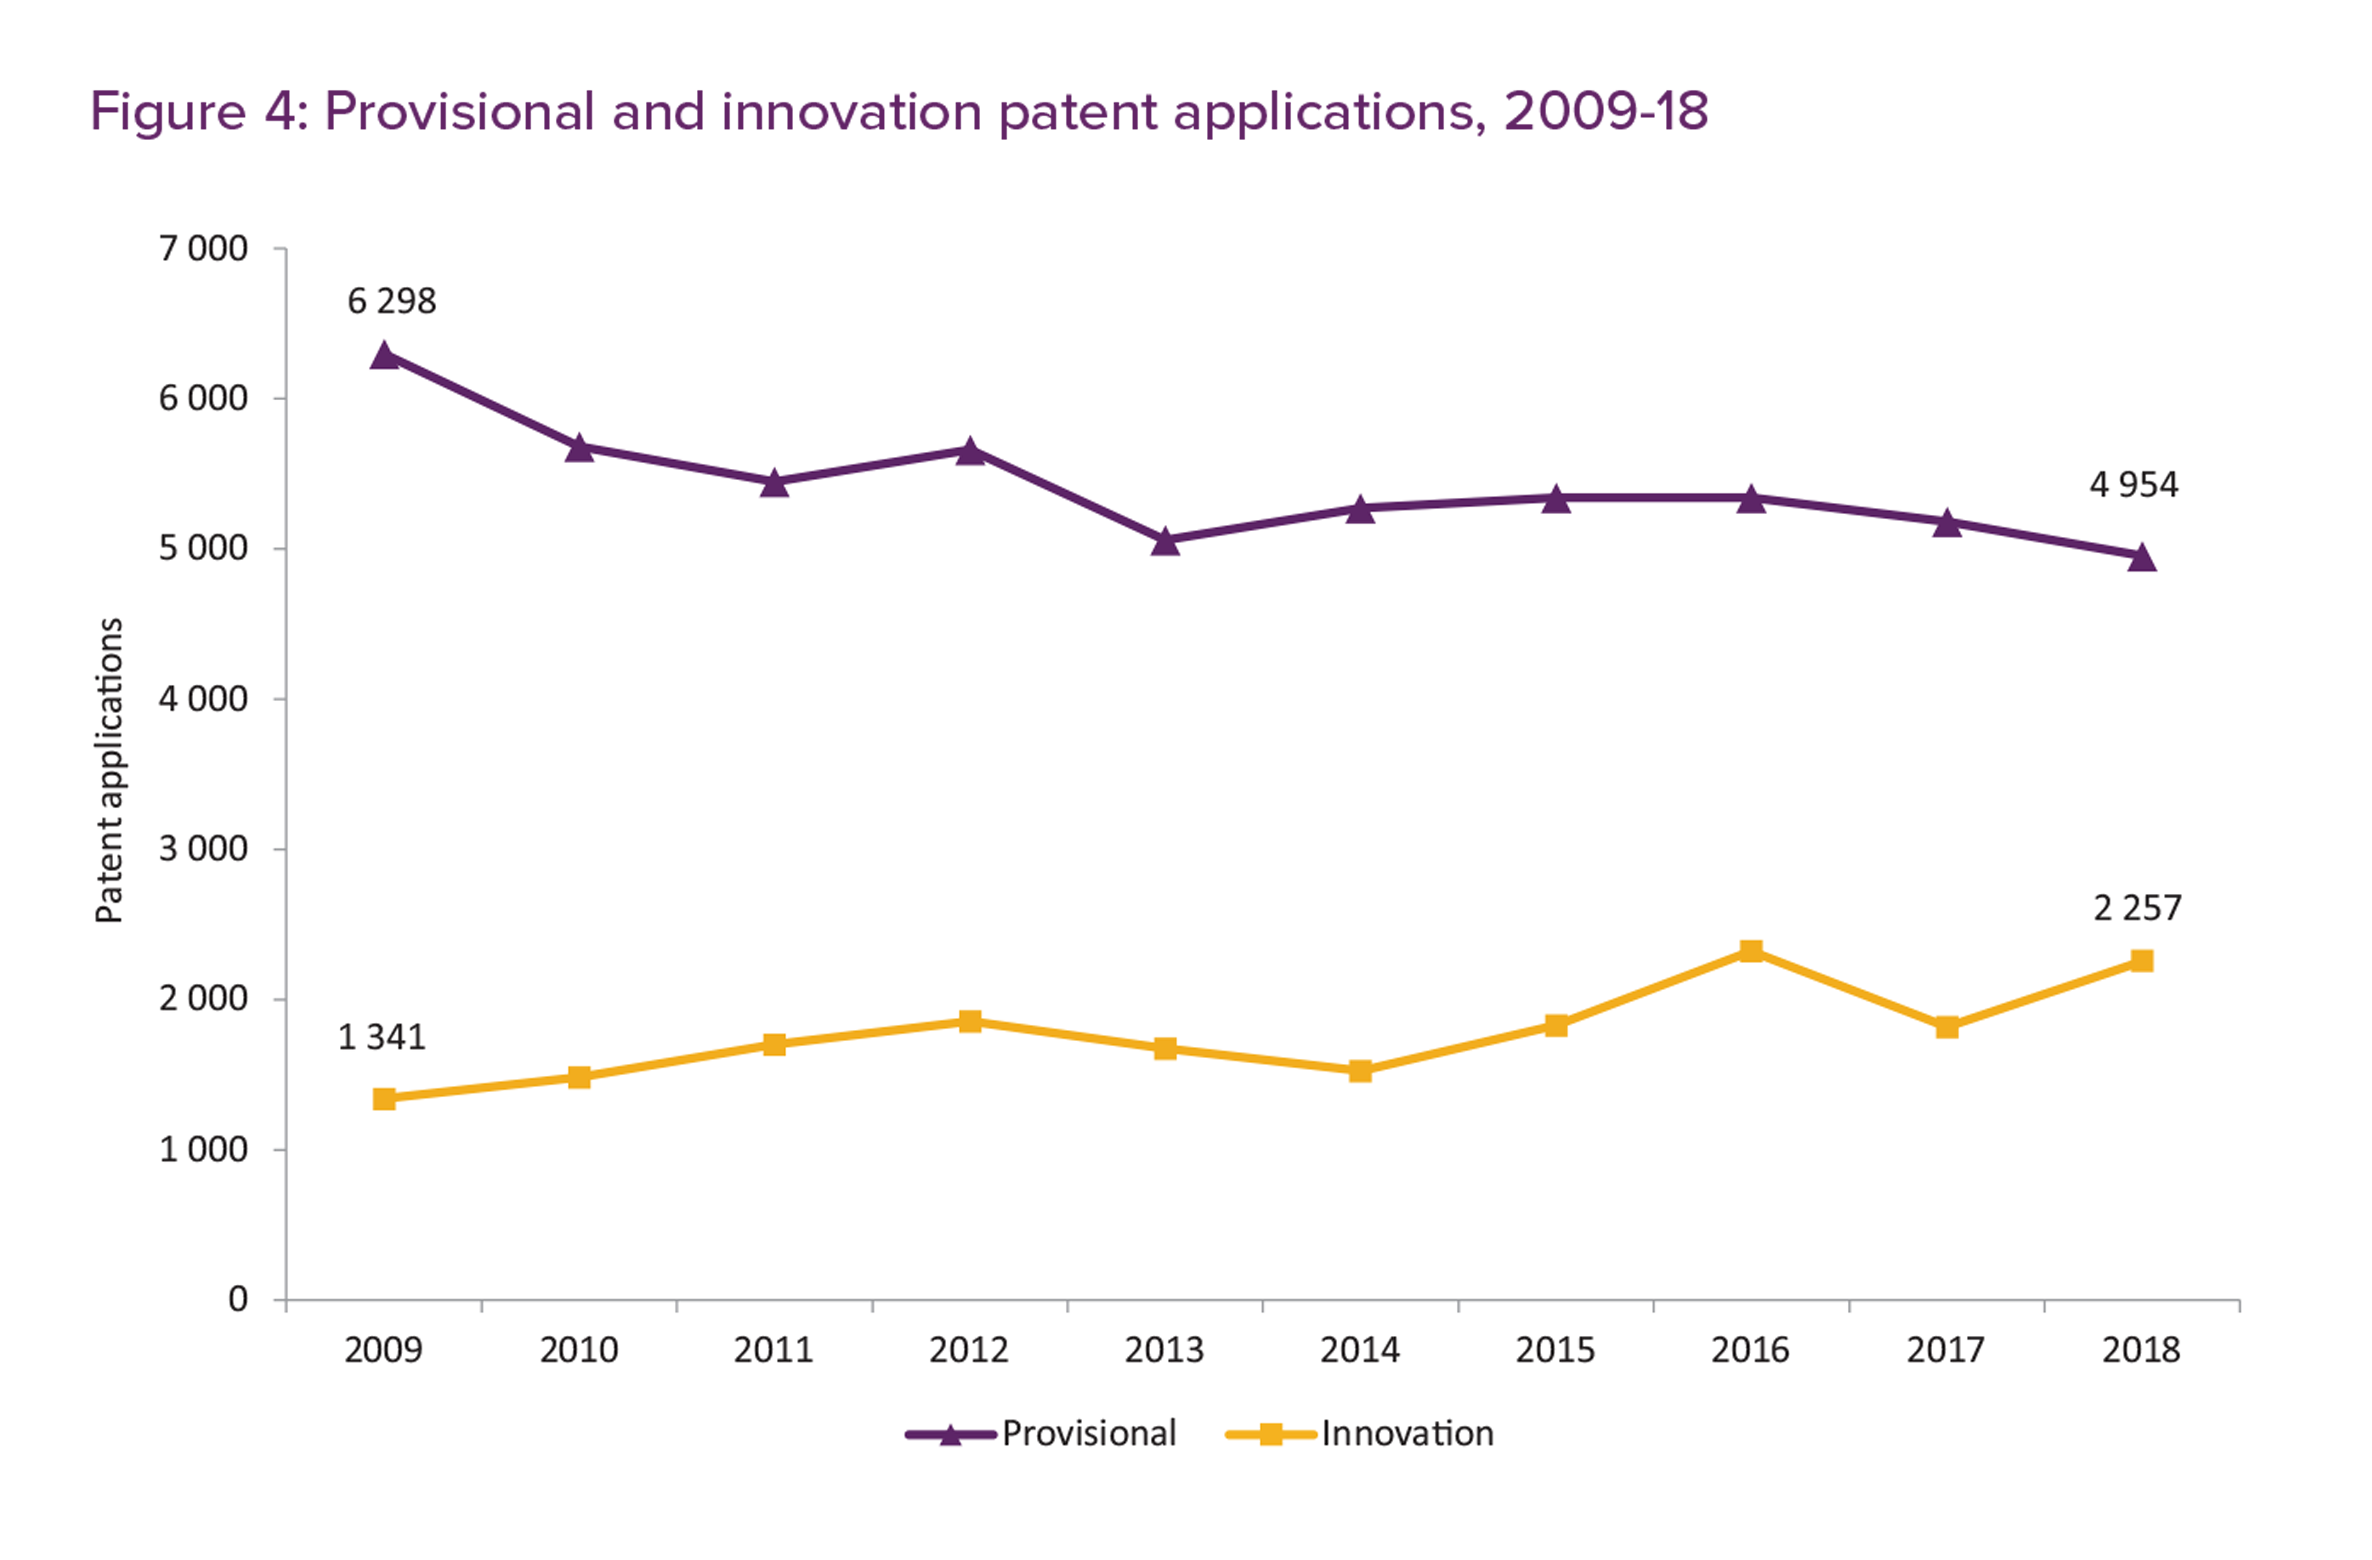 Figure 4 is a graph showing the numbers of provisional and innovation patent applications from 2009 to 2018